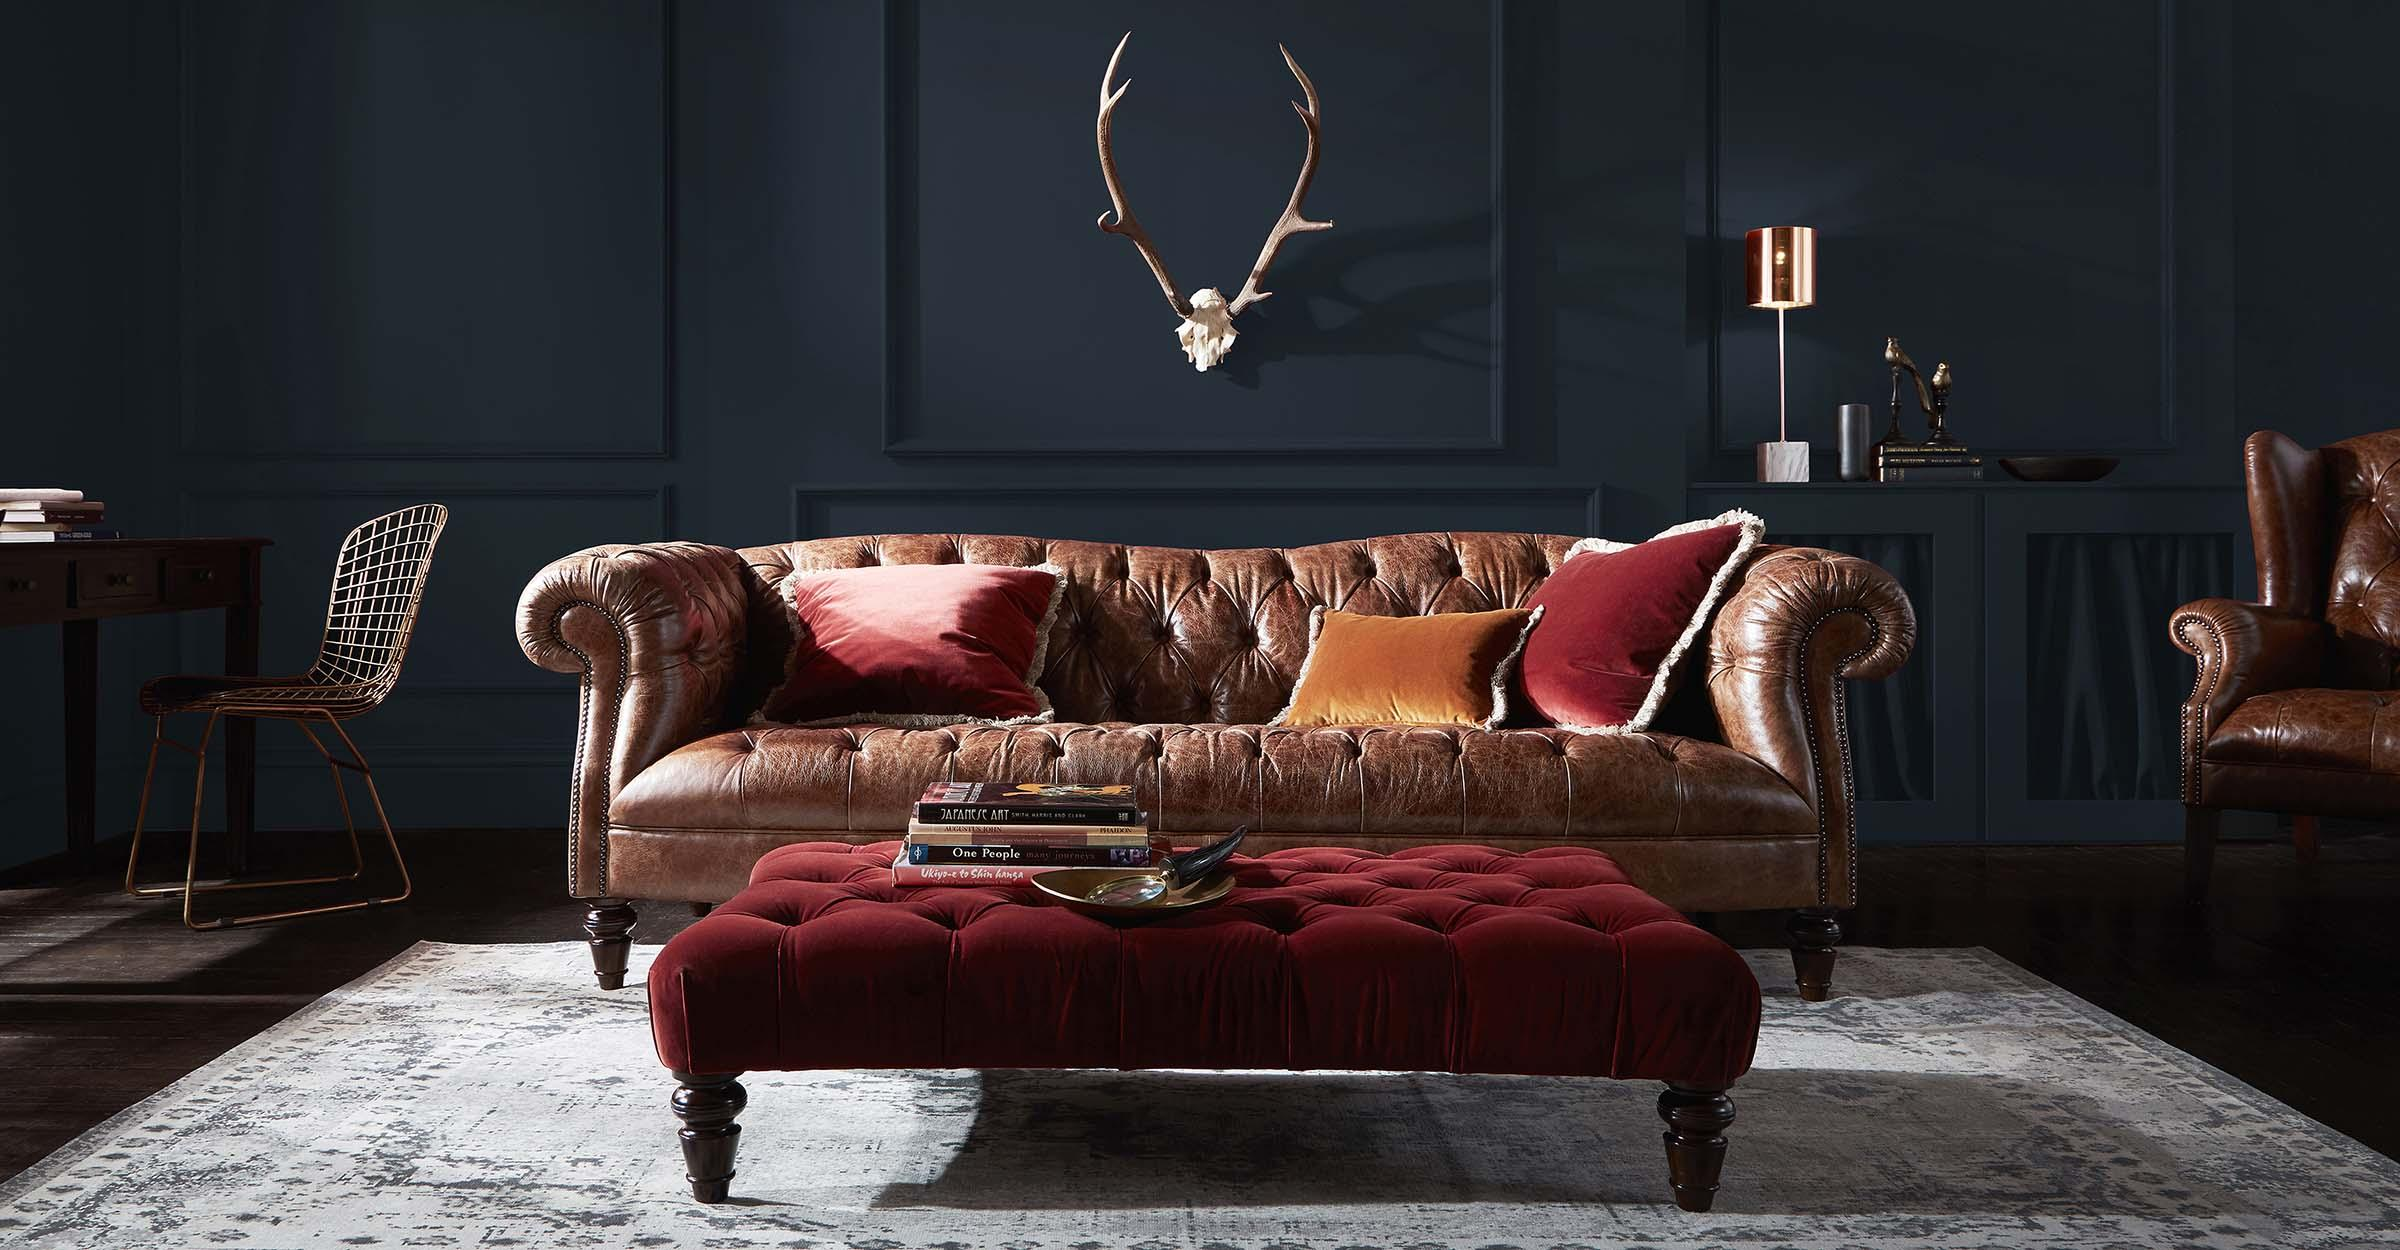 The Chesterfield sofa – a timeless traditional